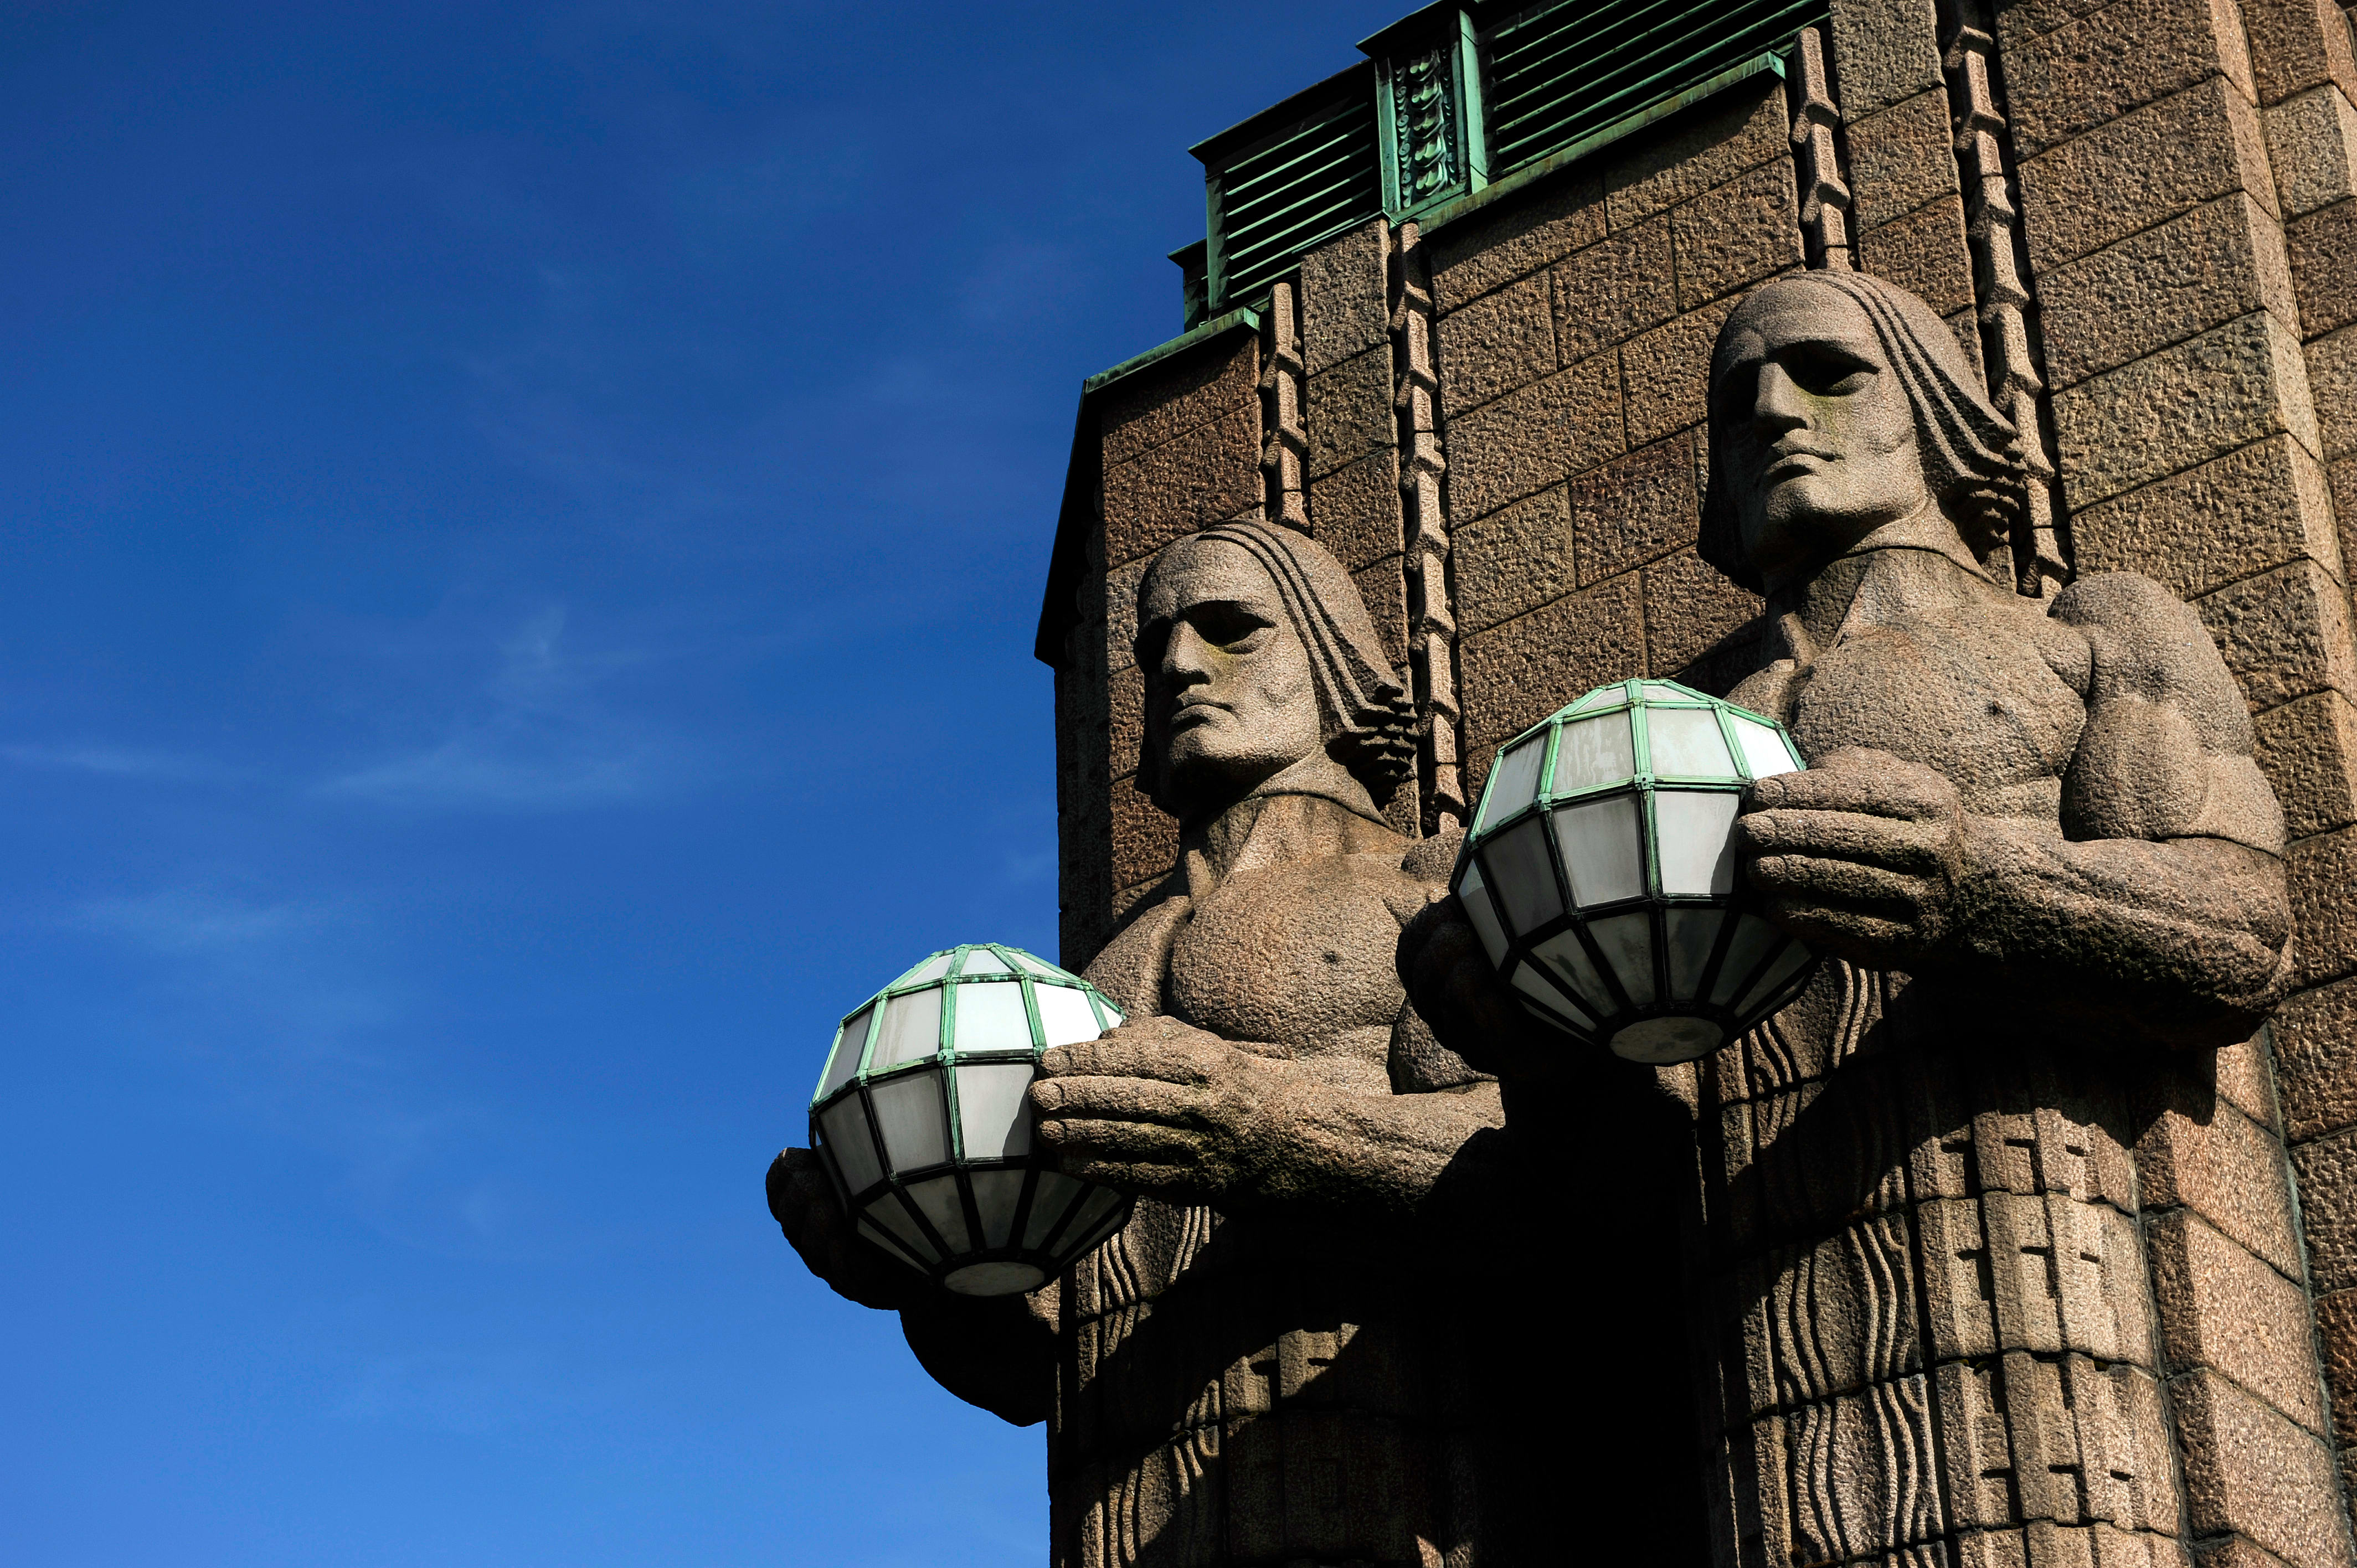 Image of the famous modernist torchbearer lamps at Helsinki Railway Station, Finland © Getty / PHAS / contributor